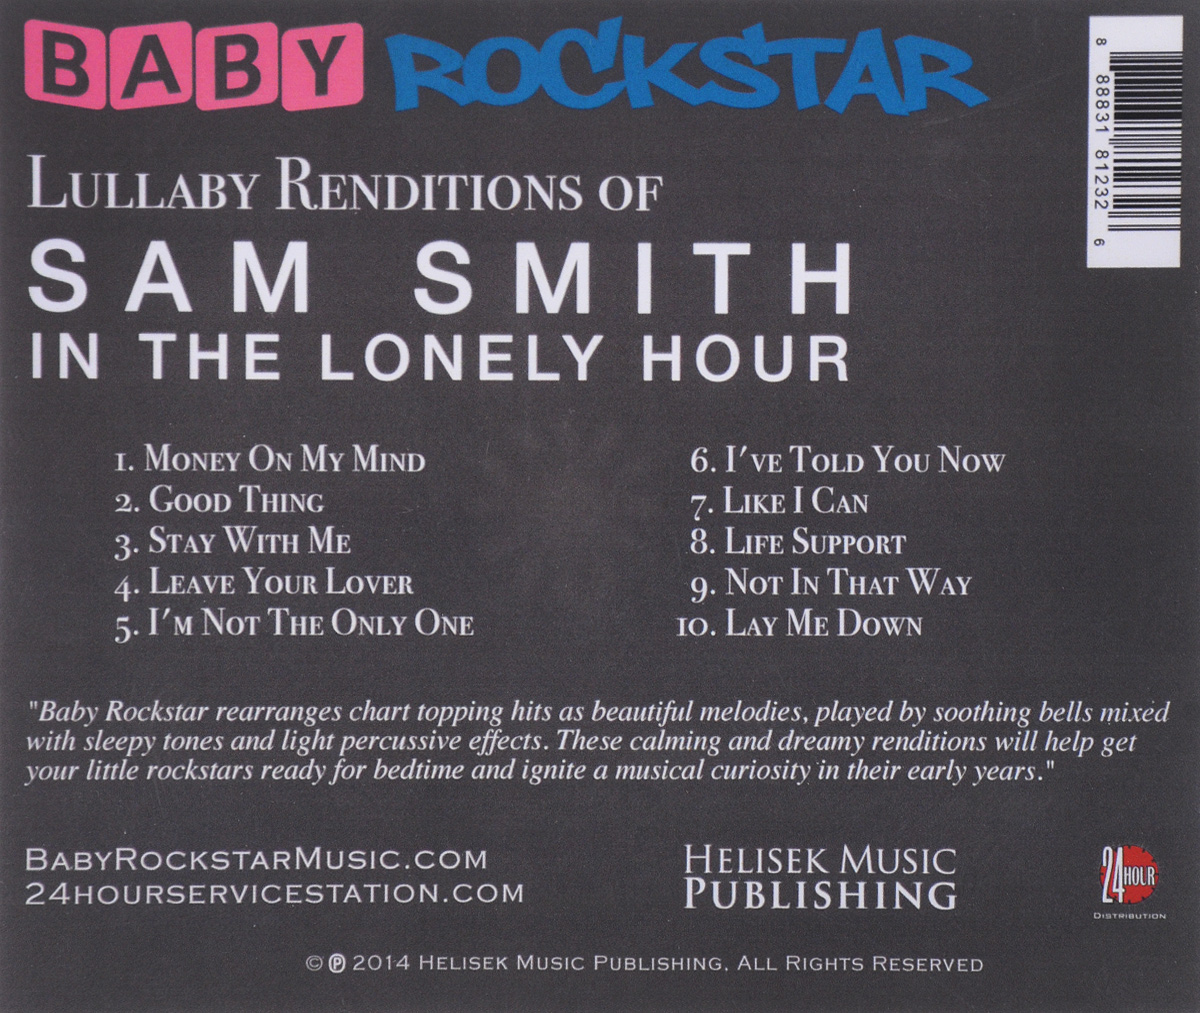 Baby Rockstar.  Lullaby Renditions Of Sam Smith - In The Lonely Hour Волтэкс-инвест